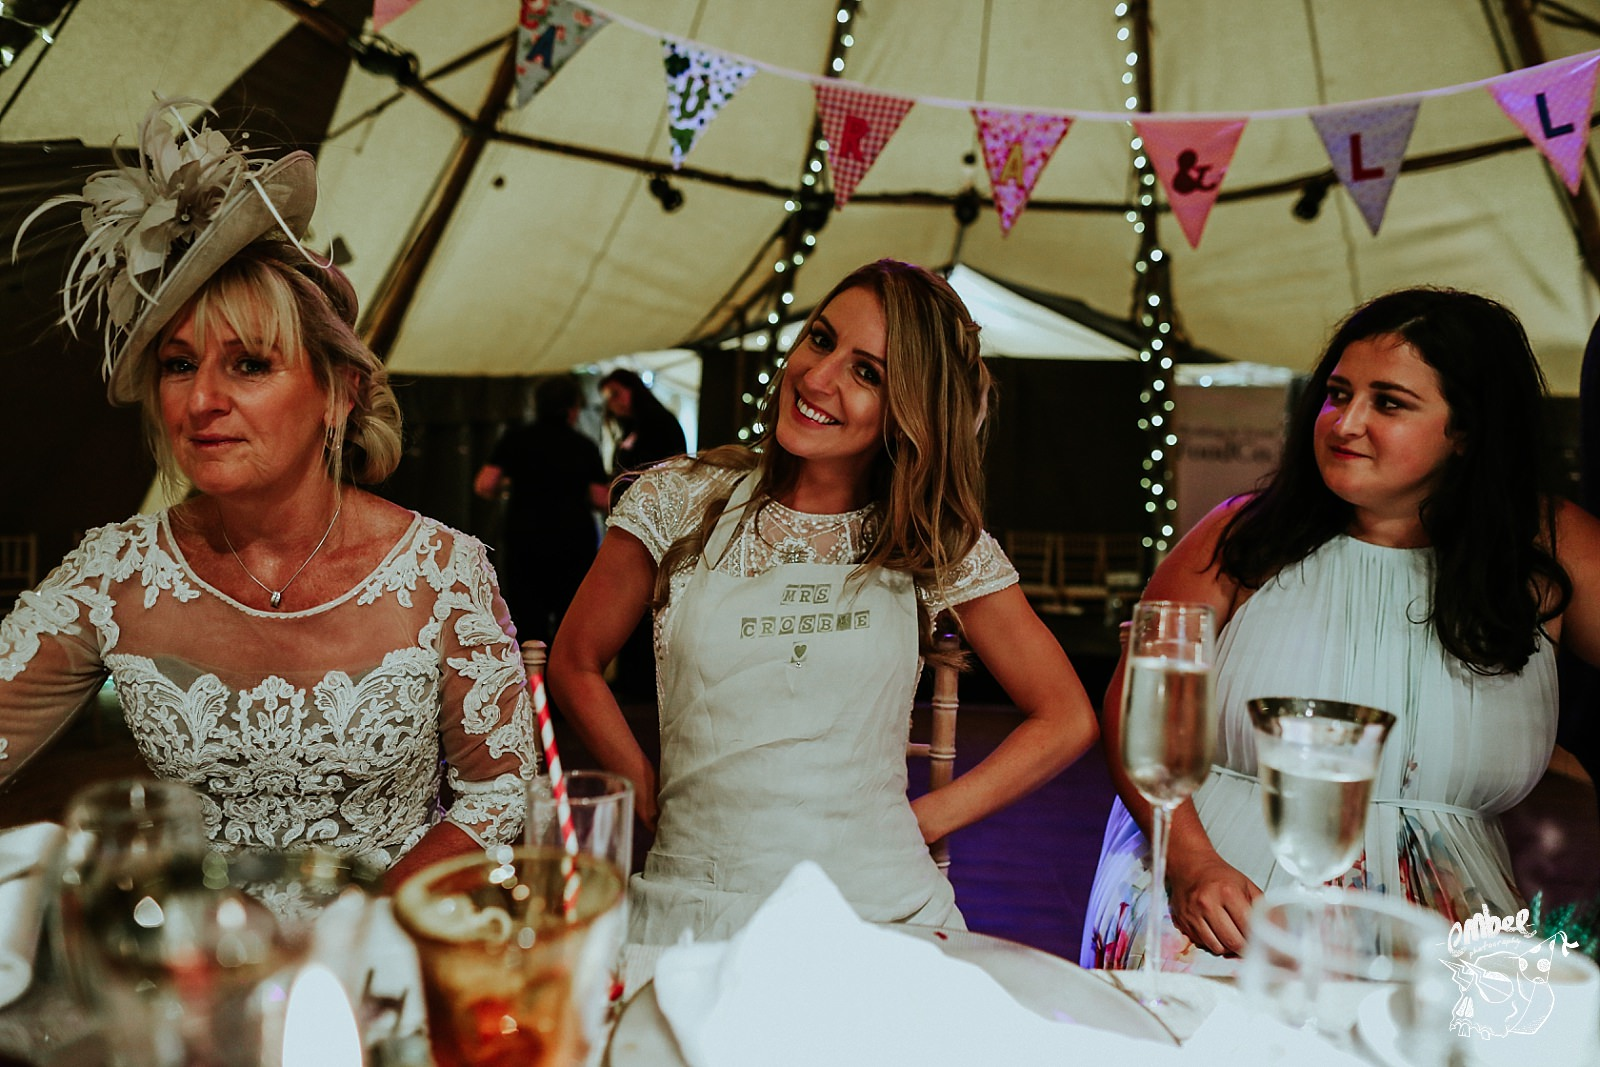 bride with dining apron with her name on it